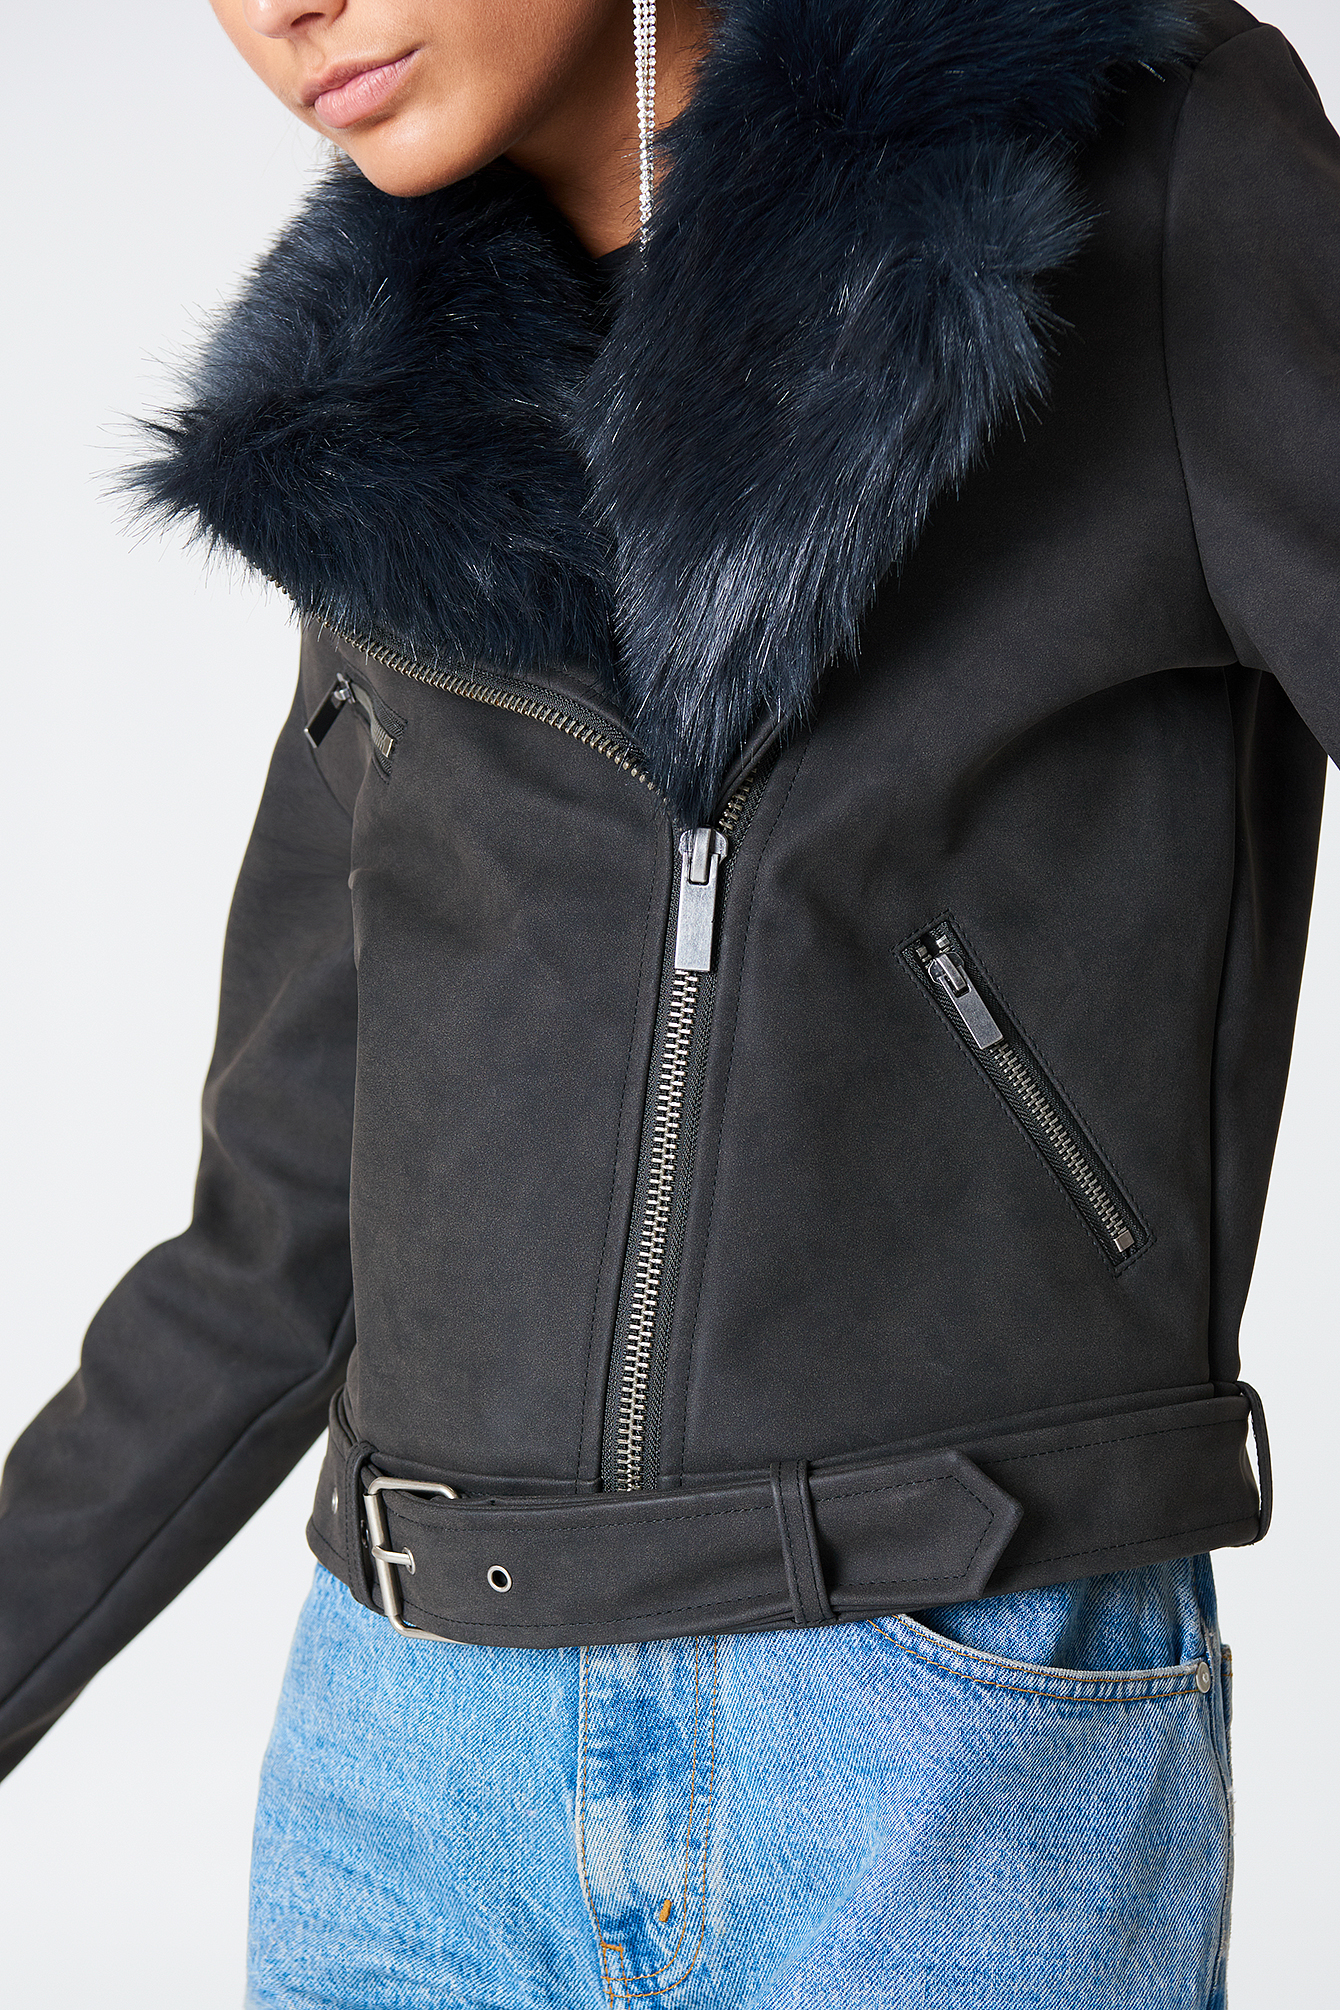 Black/DK Navy PU Jacket With Faux Fur